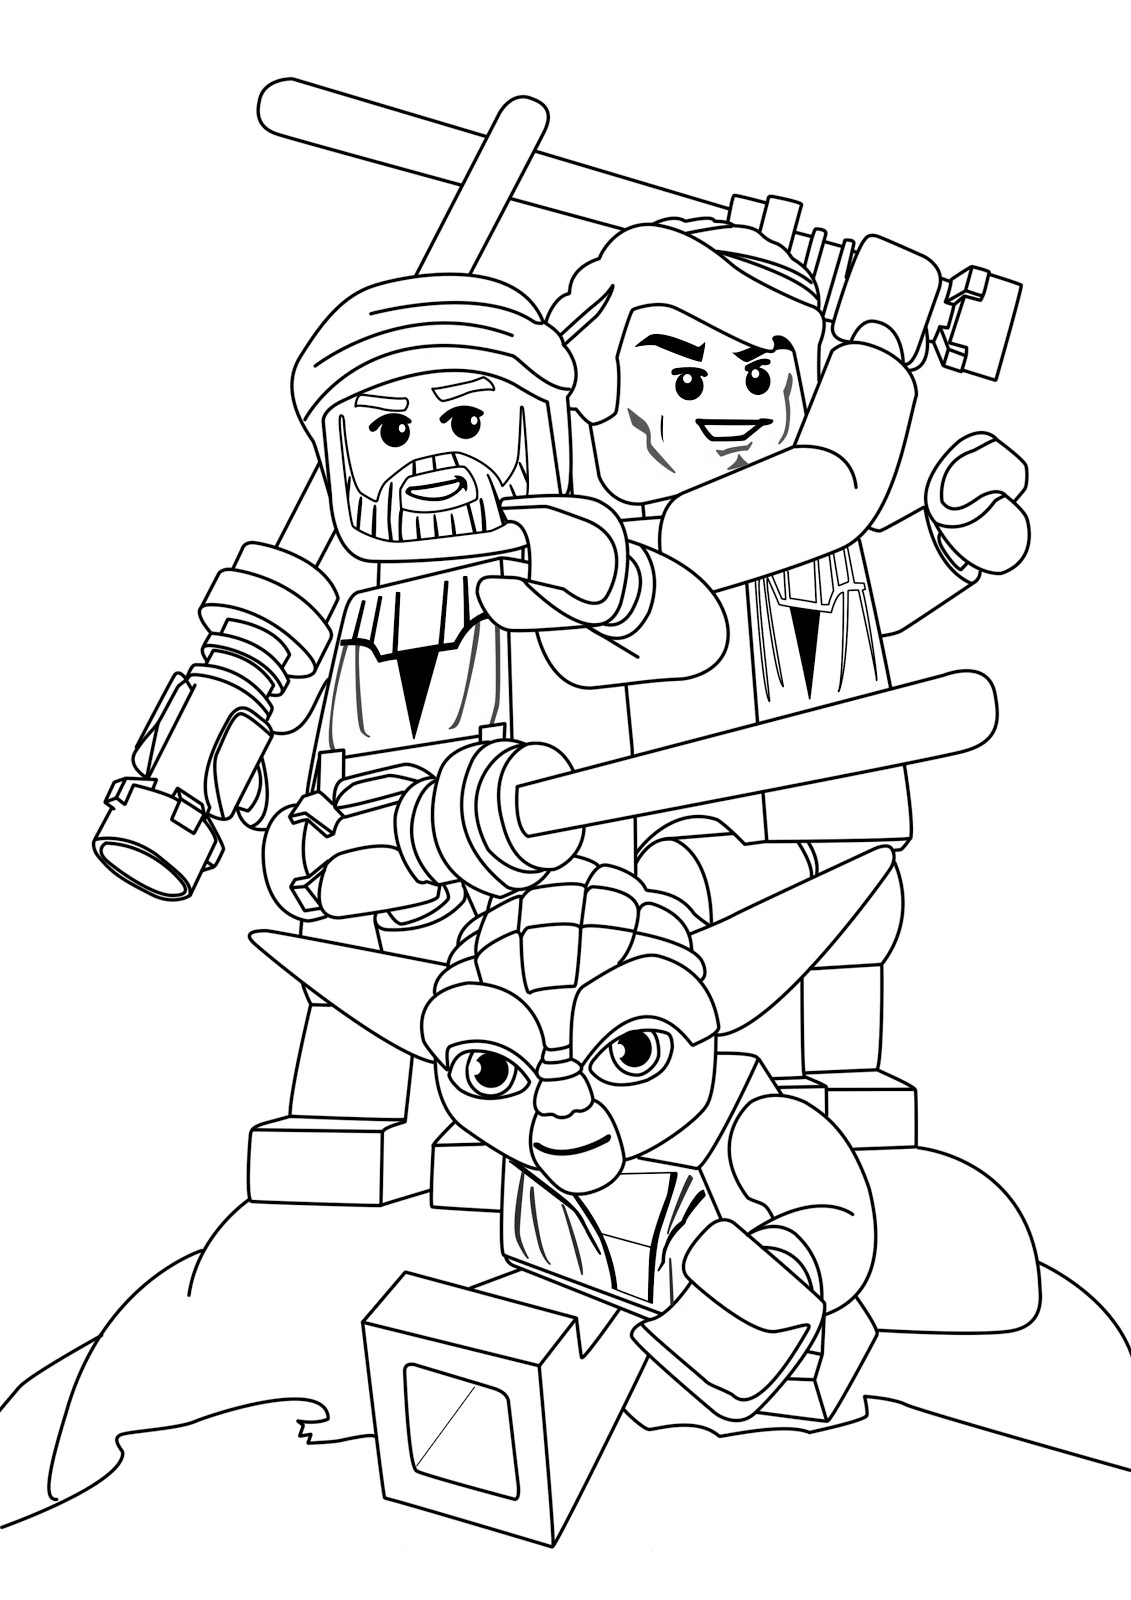 free lego star wars coloring pages lego star wars coloring pages best coloring pages for kids free coloring pages lego wars star